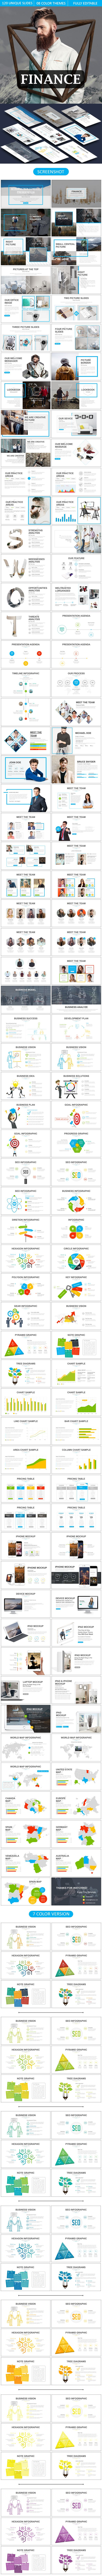 Finance Powerpoint Template. Download here: http://graphicriver.net/item/finance-powerpoint-template/16039896?ref=ksioks